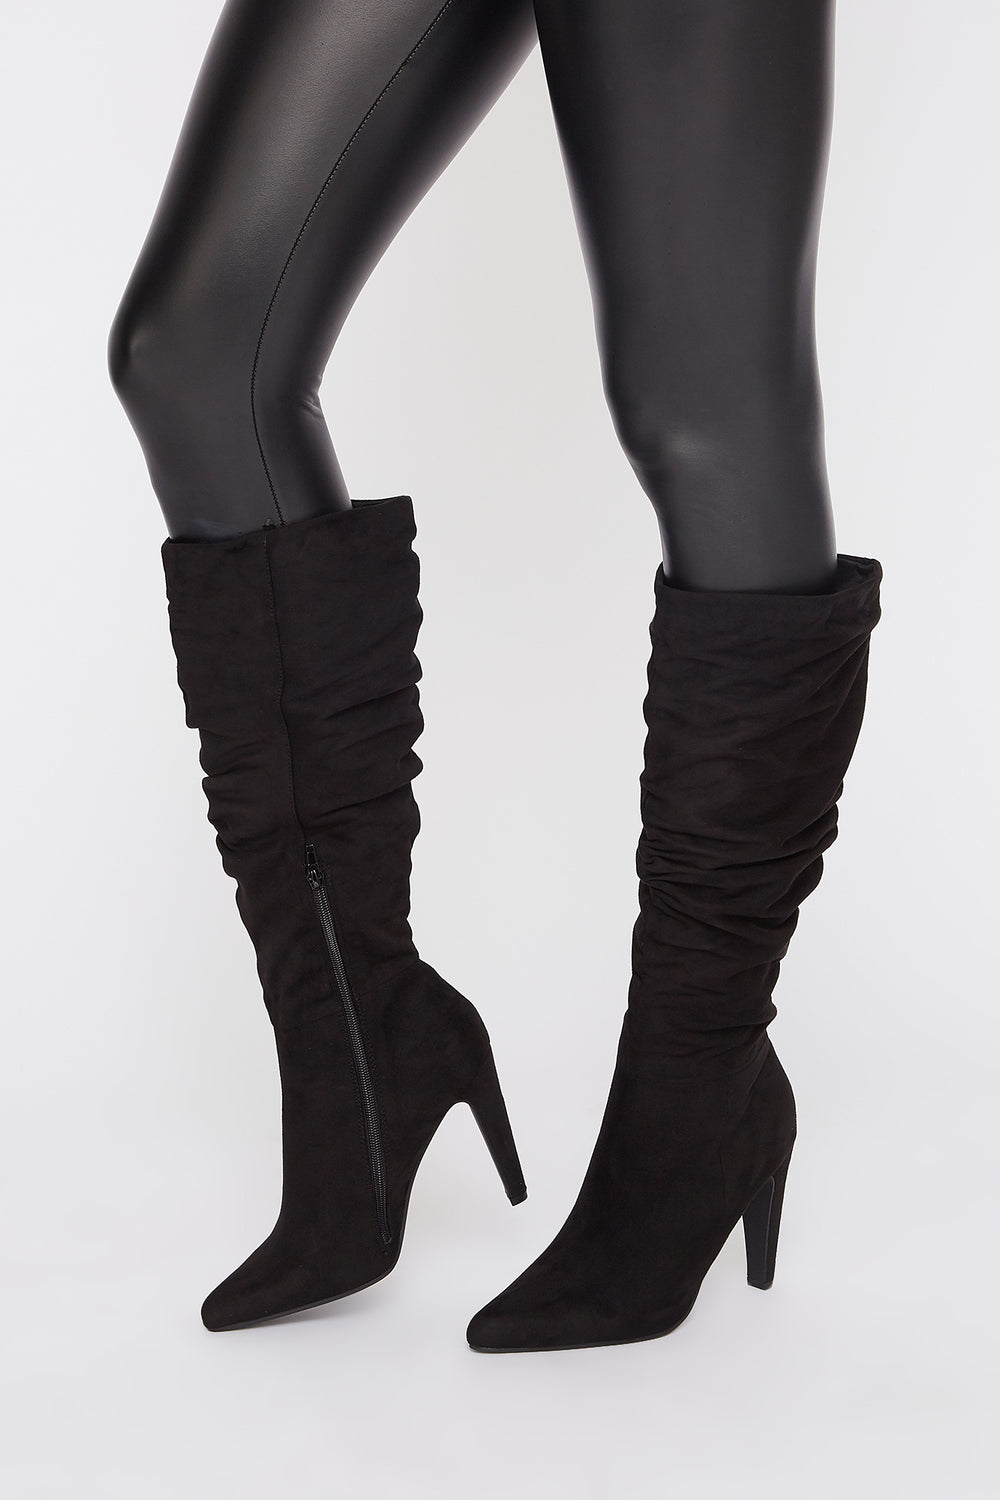 Ruched Mid Calf Heel Boot Black